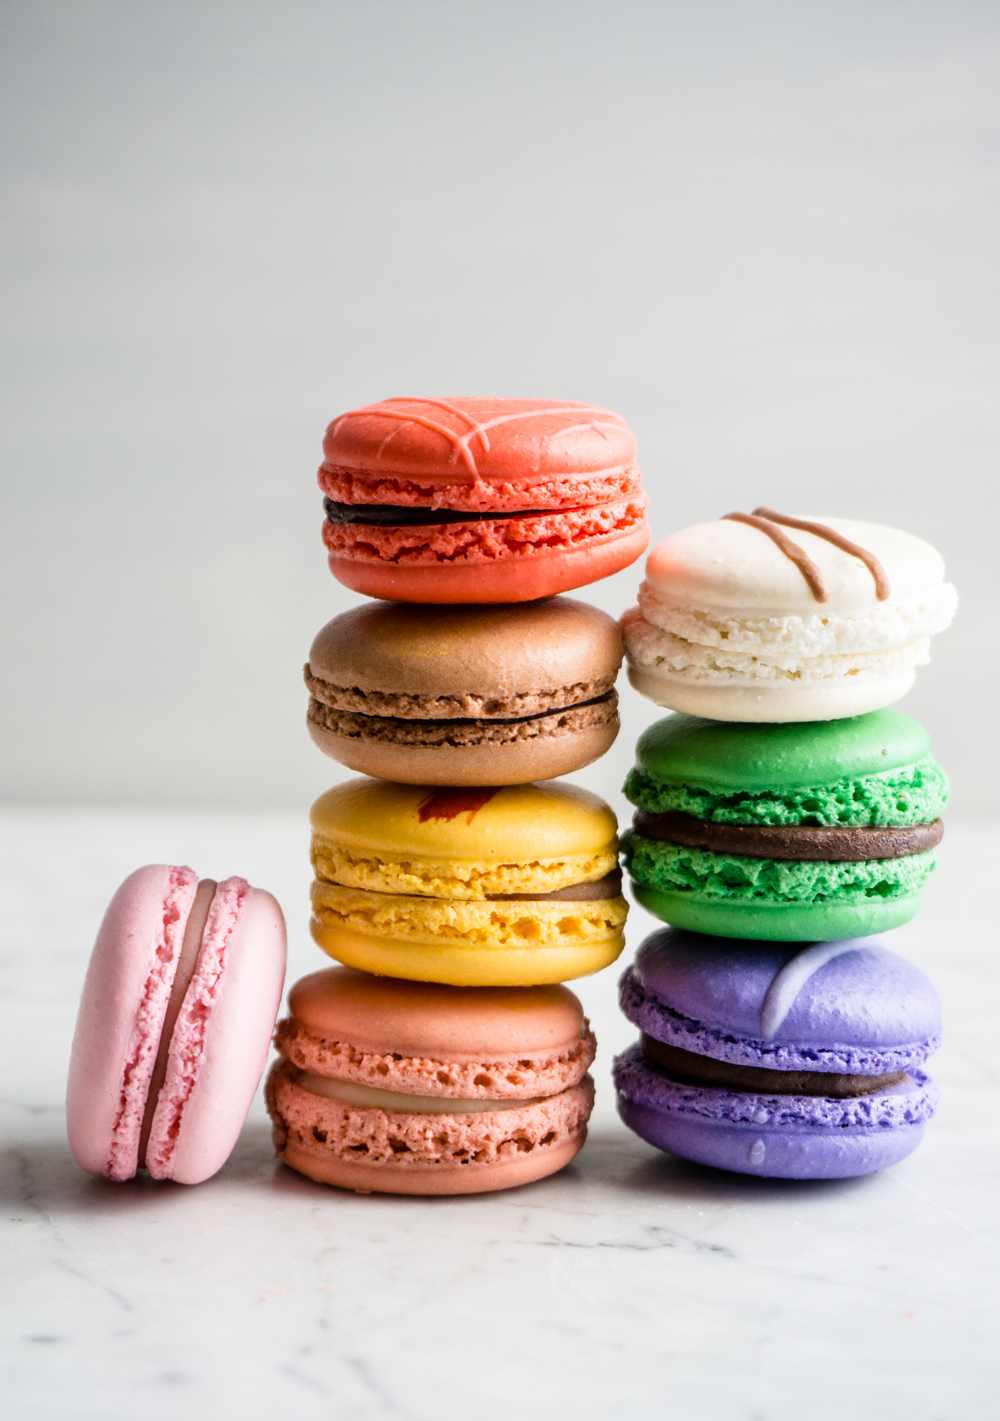 Finesse Pastries macarons - beautiful colors and endless flavor variations.